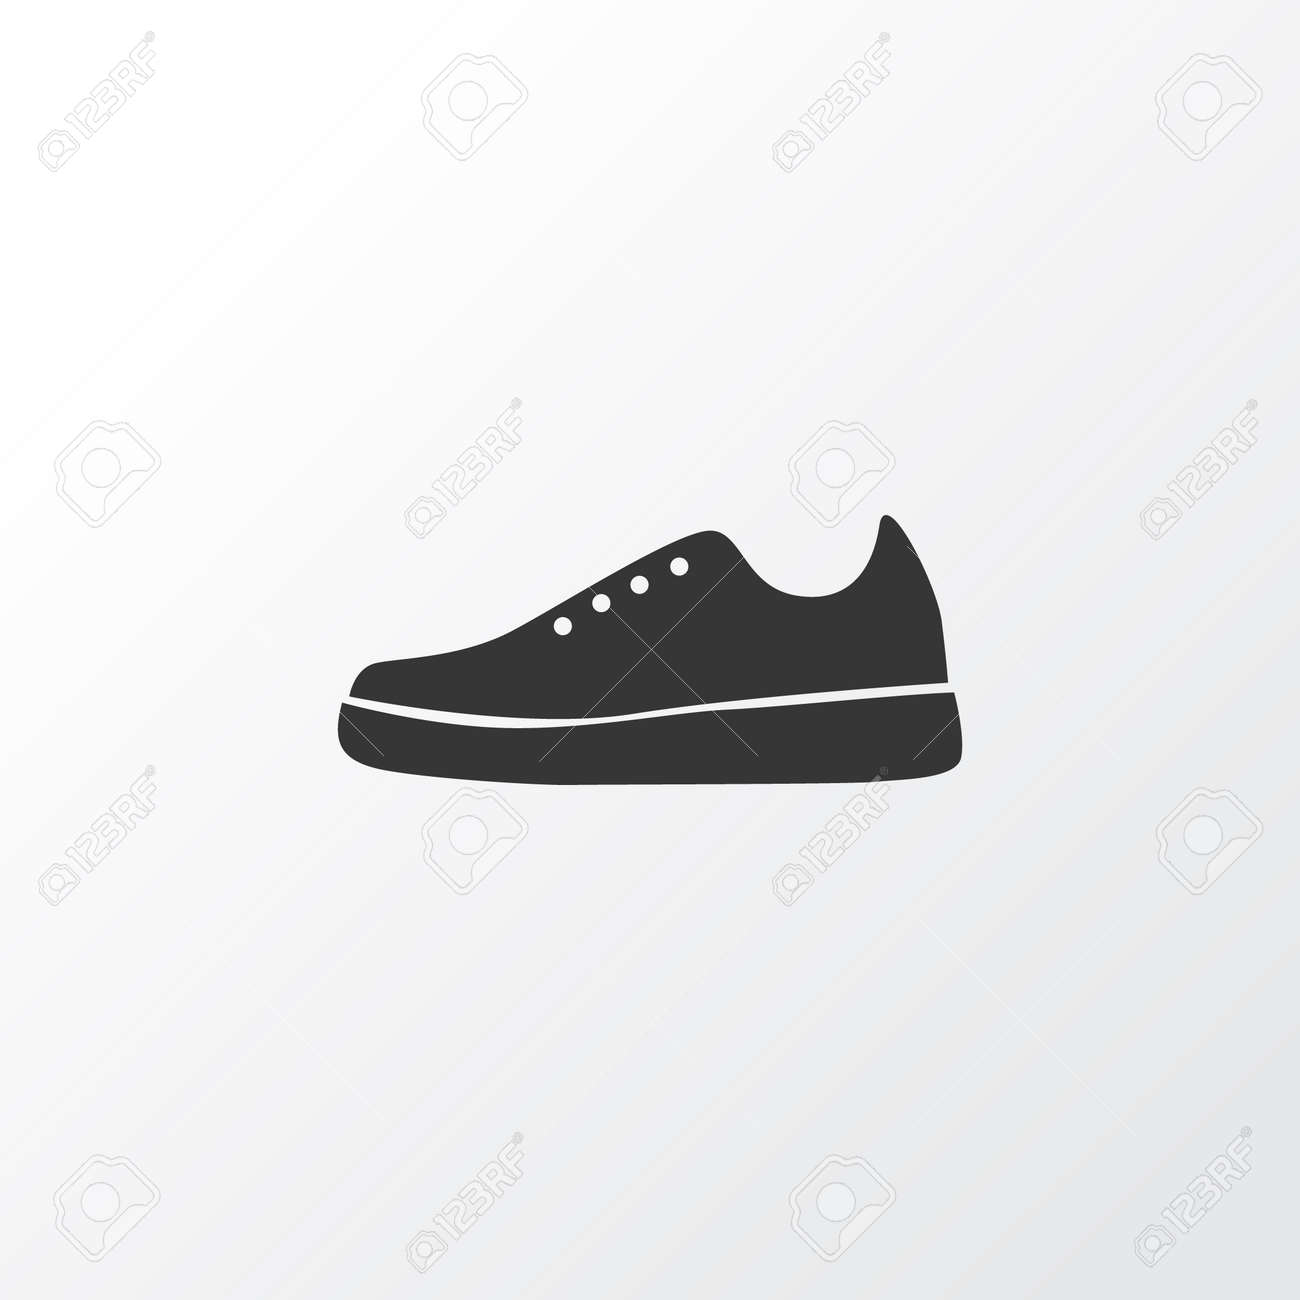 Gumshoes Icon Symbol Premium Quality Isolated Sneakers Element